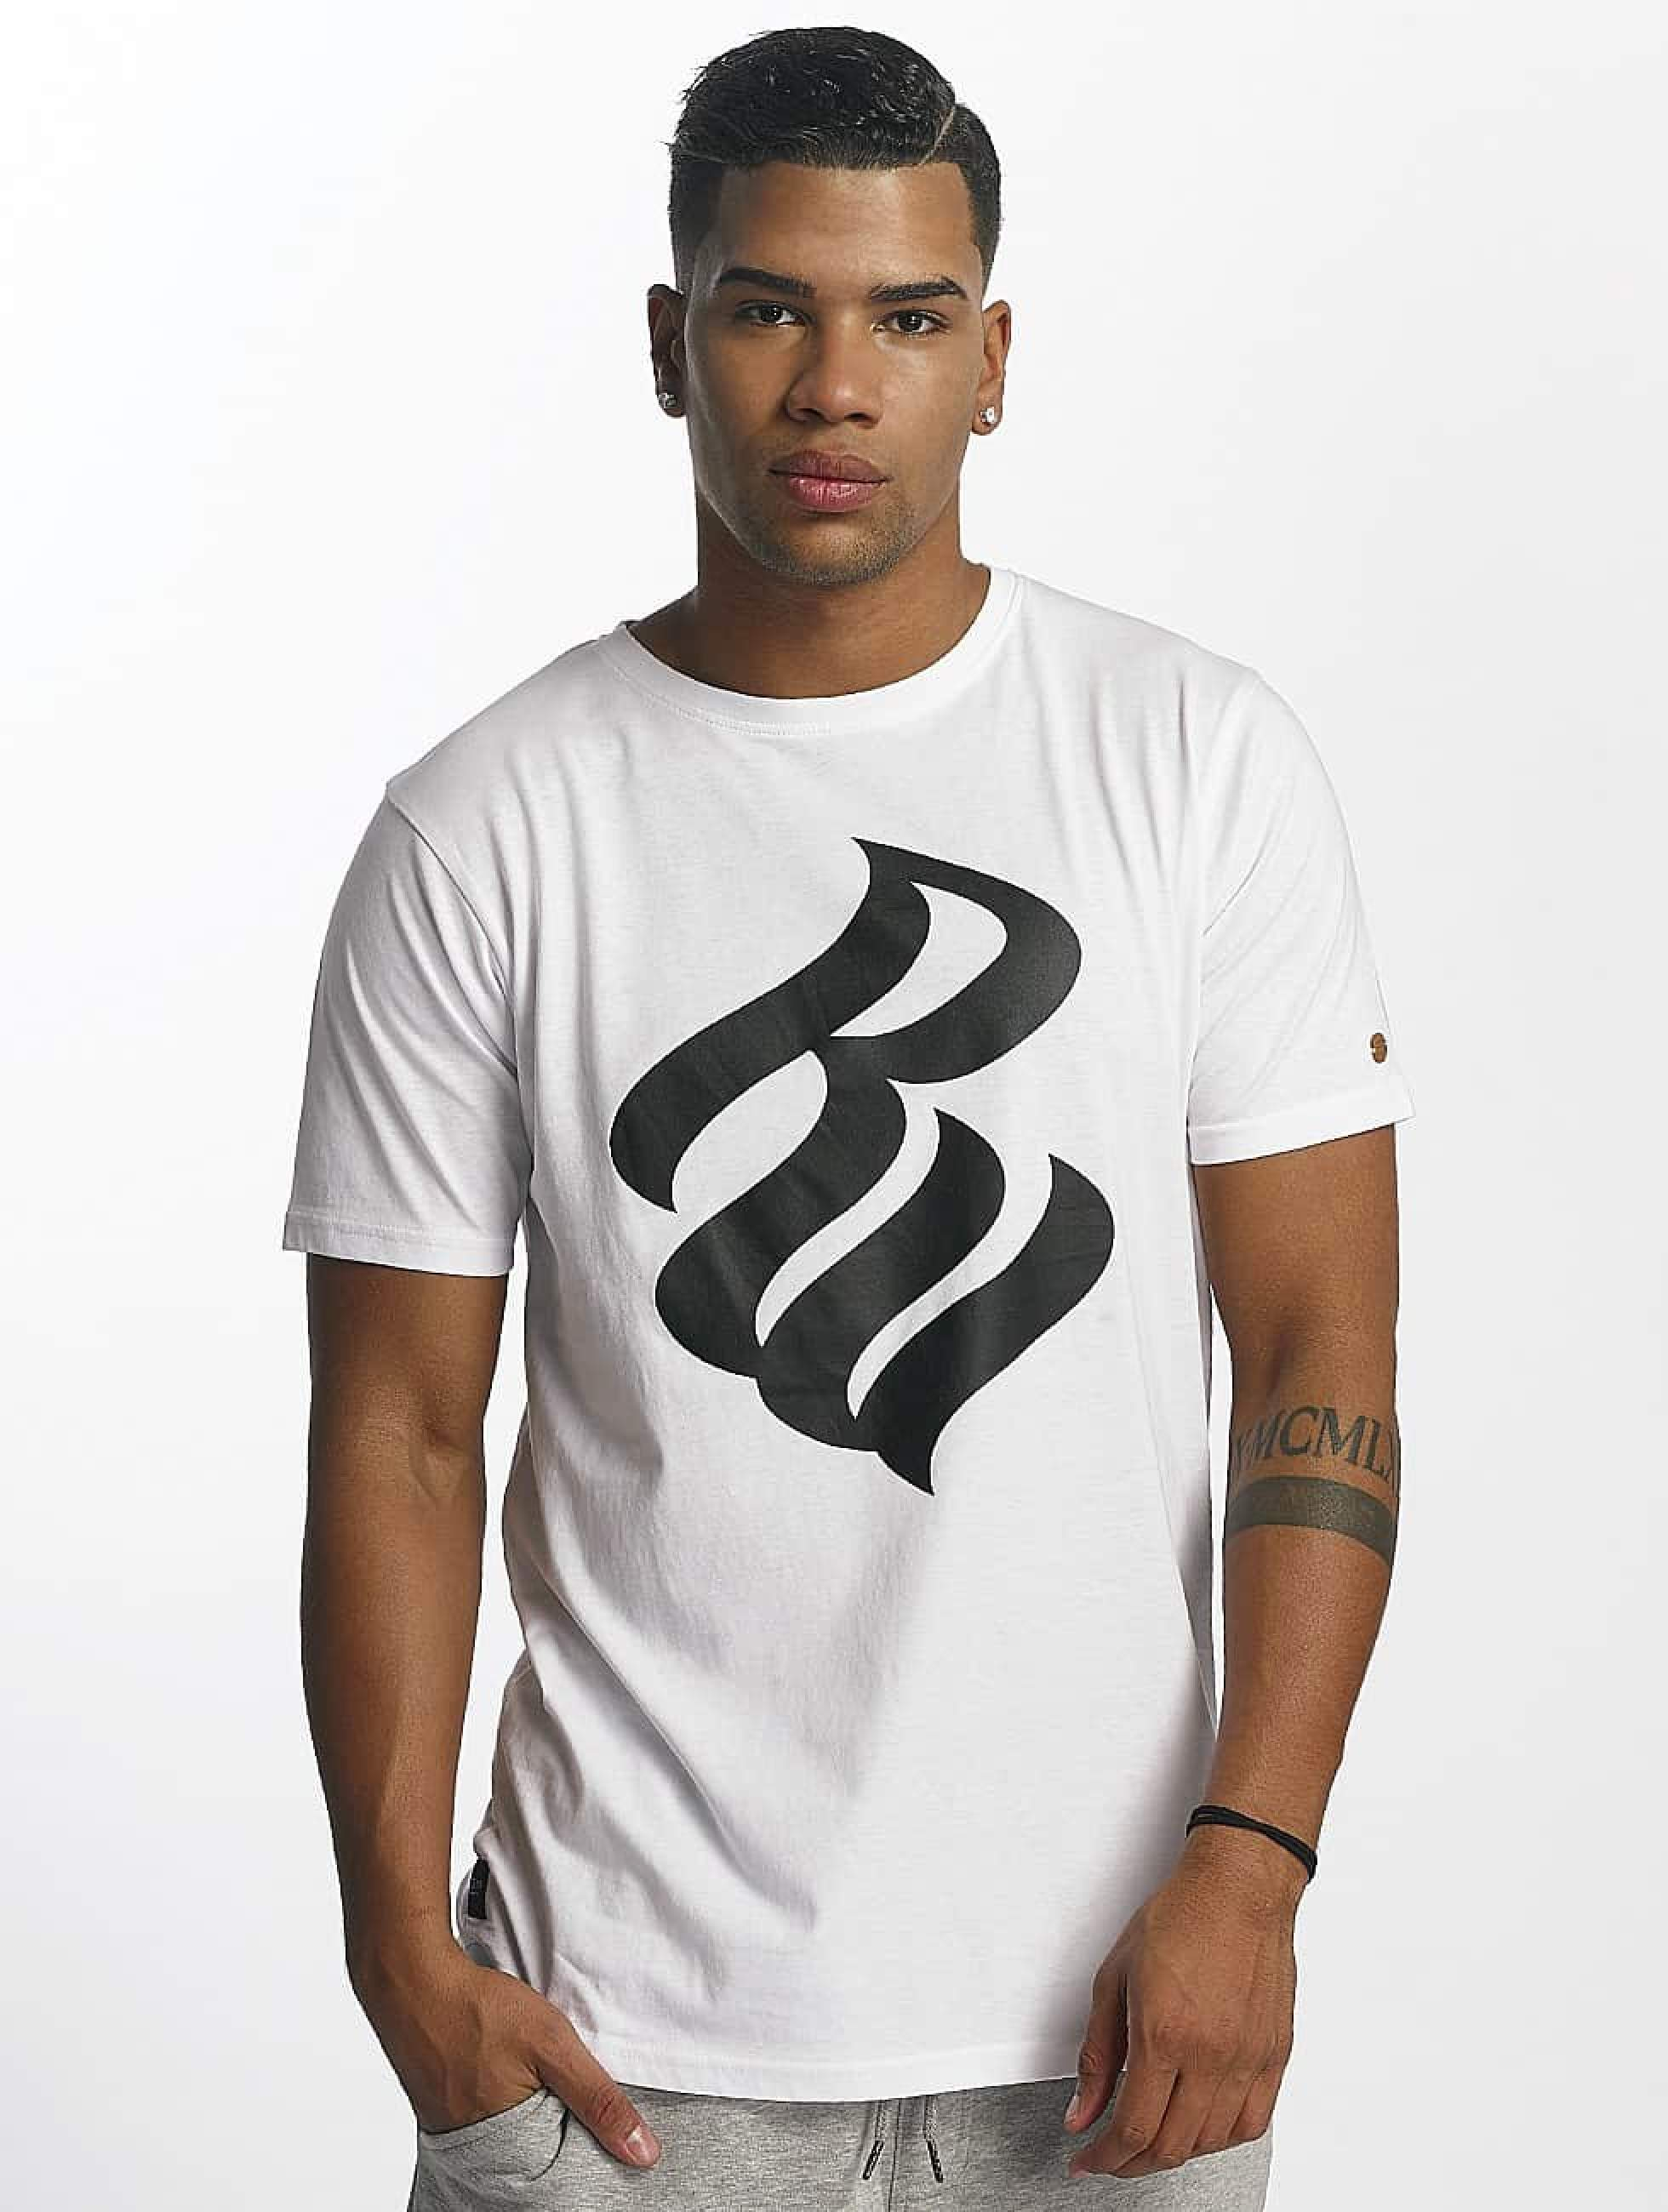 Rocawear / T-Shirt Logo in white S